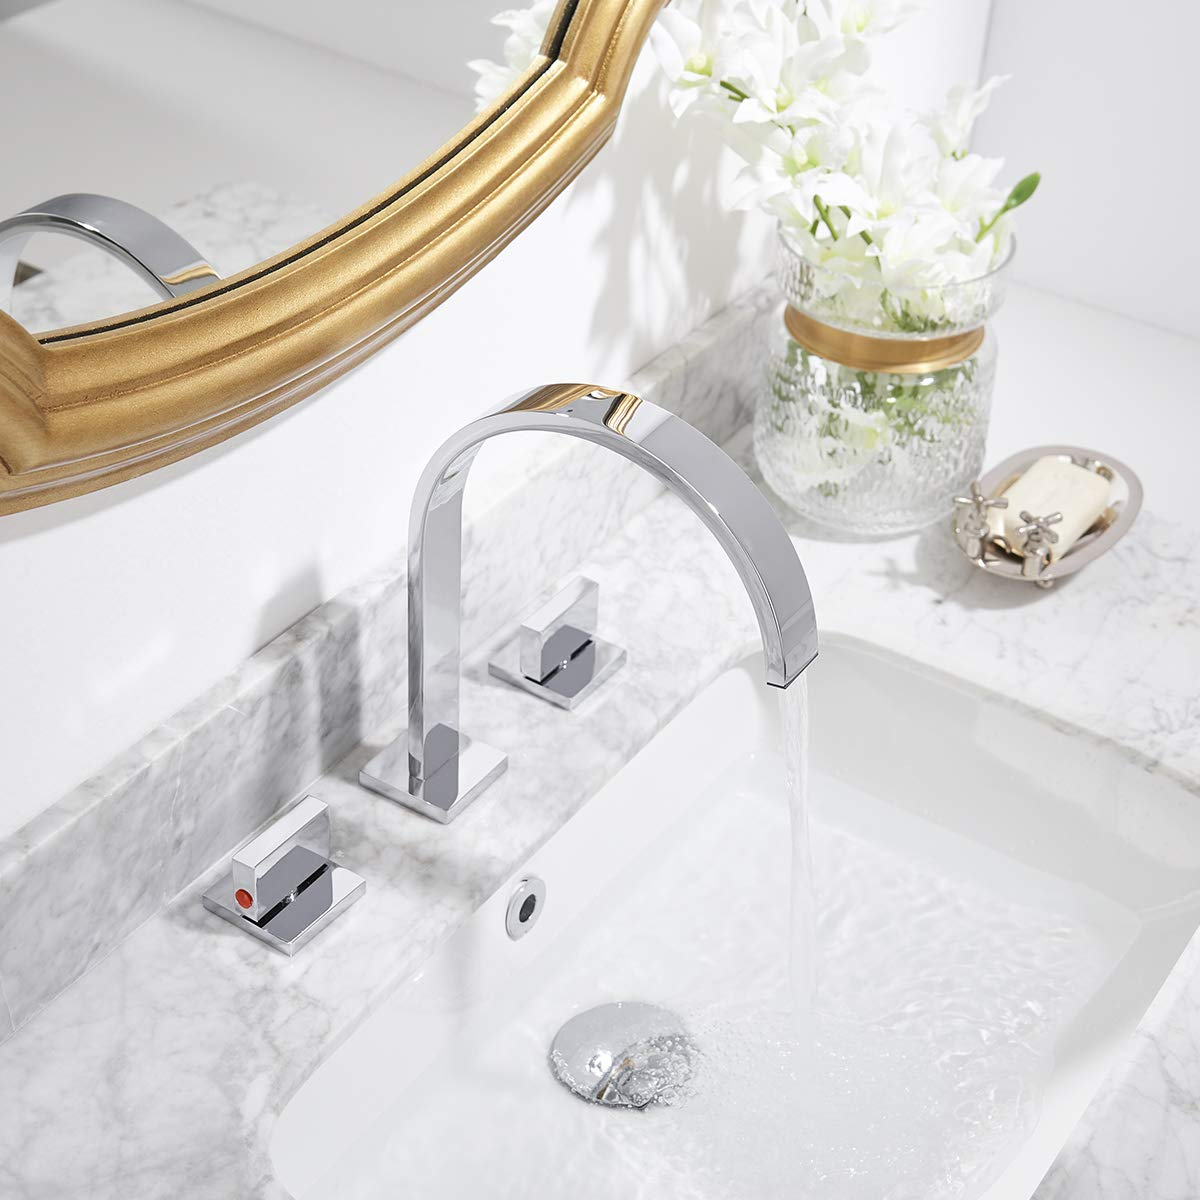 Homevacious Widespread Bathroom Sink Faucet Chrome 2 Handles 3 Holes 8-16 Inch Waterfall Bath Lavatory Modern Faucets Long Spout Deck Mount Ceramic Valve Basin Deck Mount Commercial Mixer Tap Hose